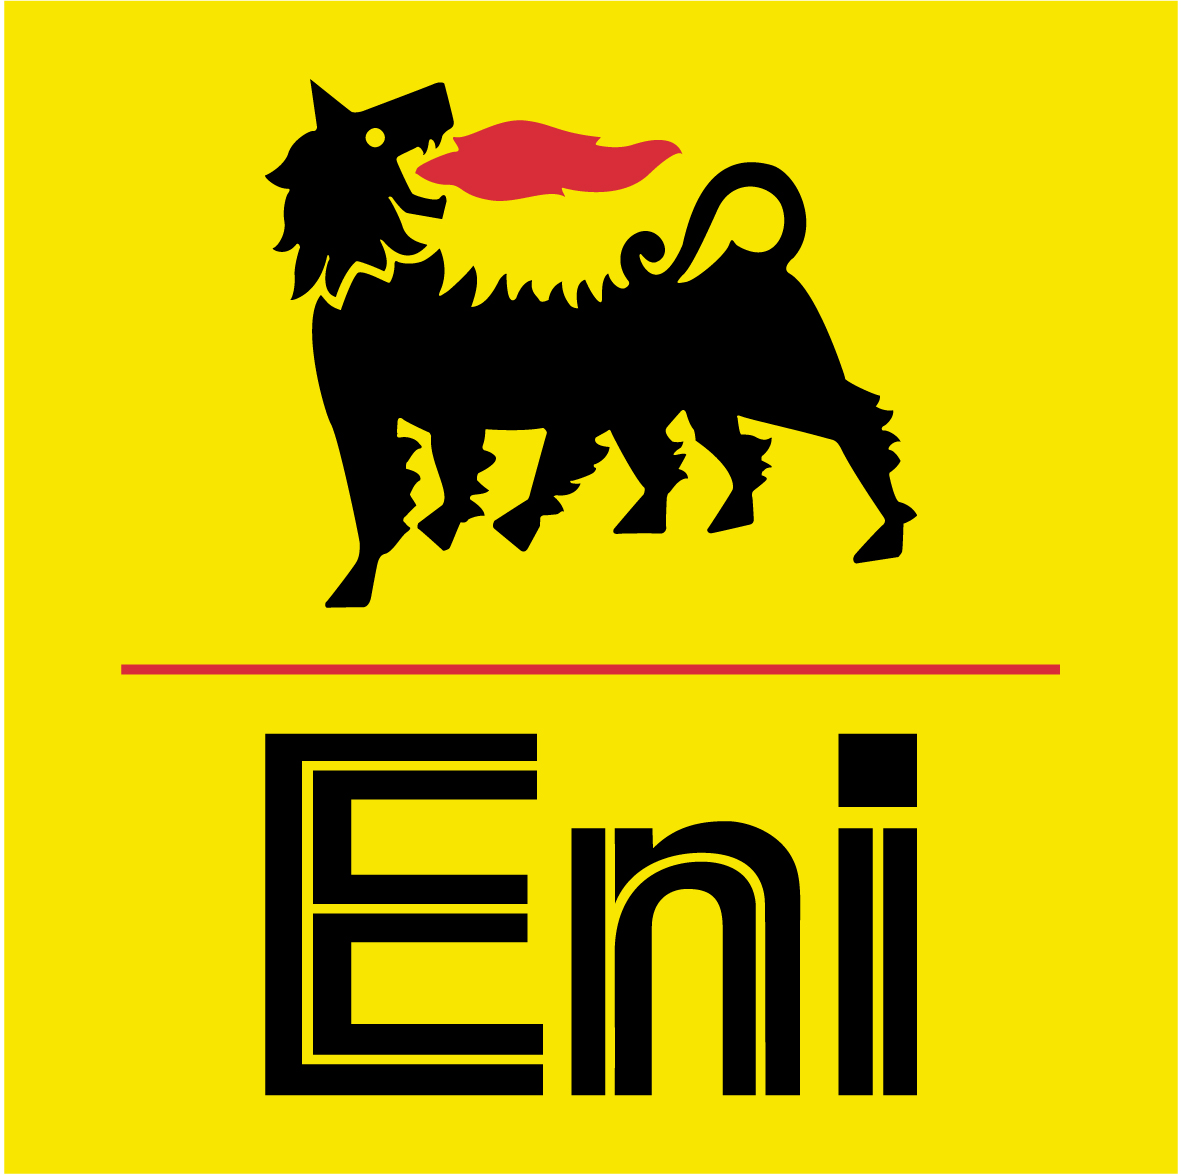 Eni Successfully Appraises Well Offshore Indonesia